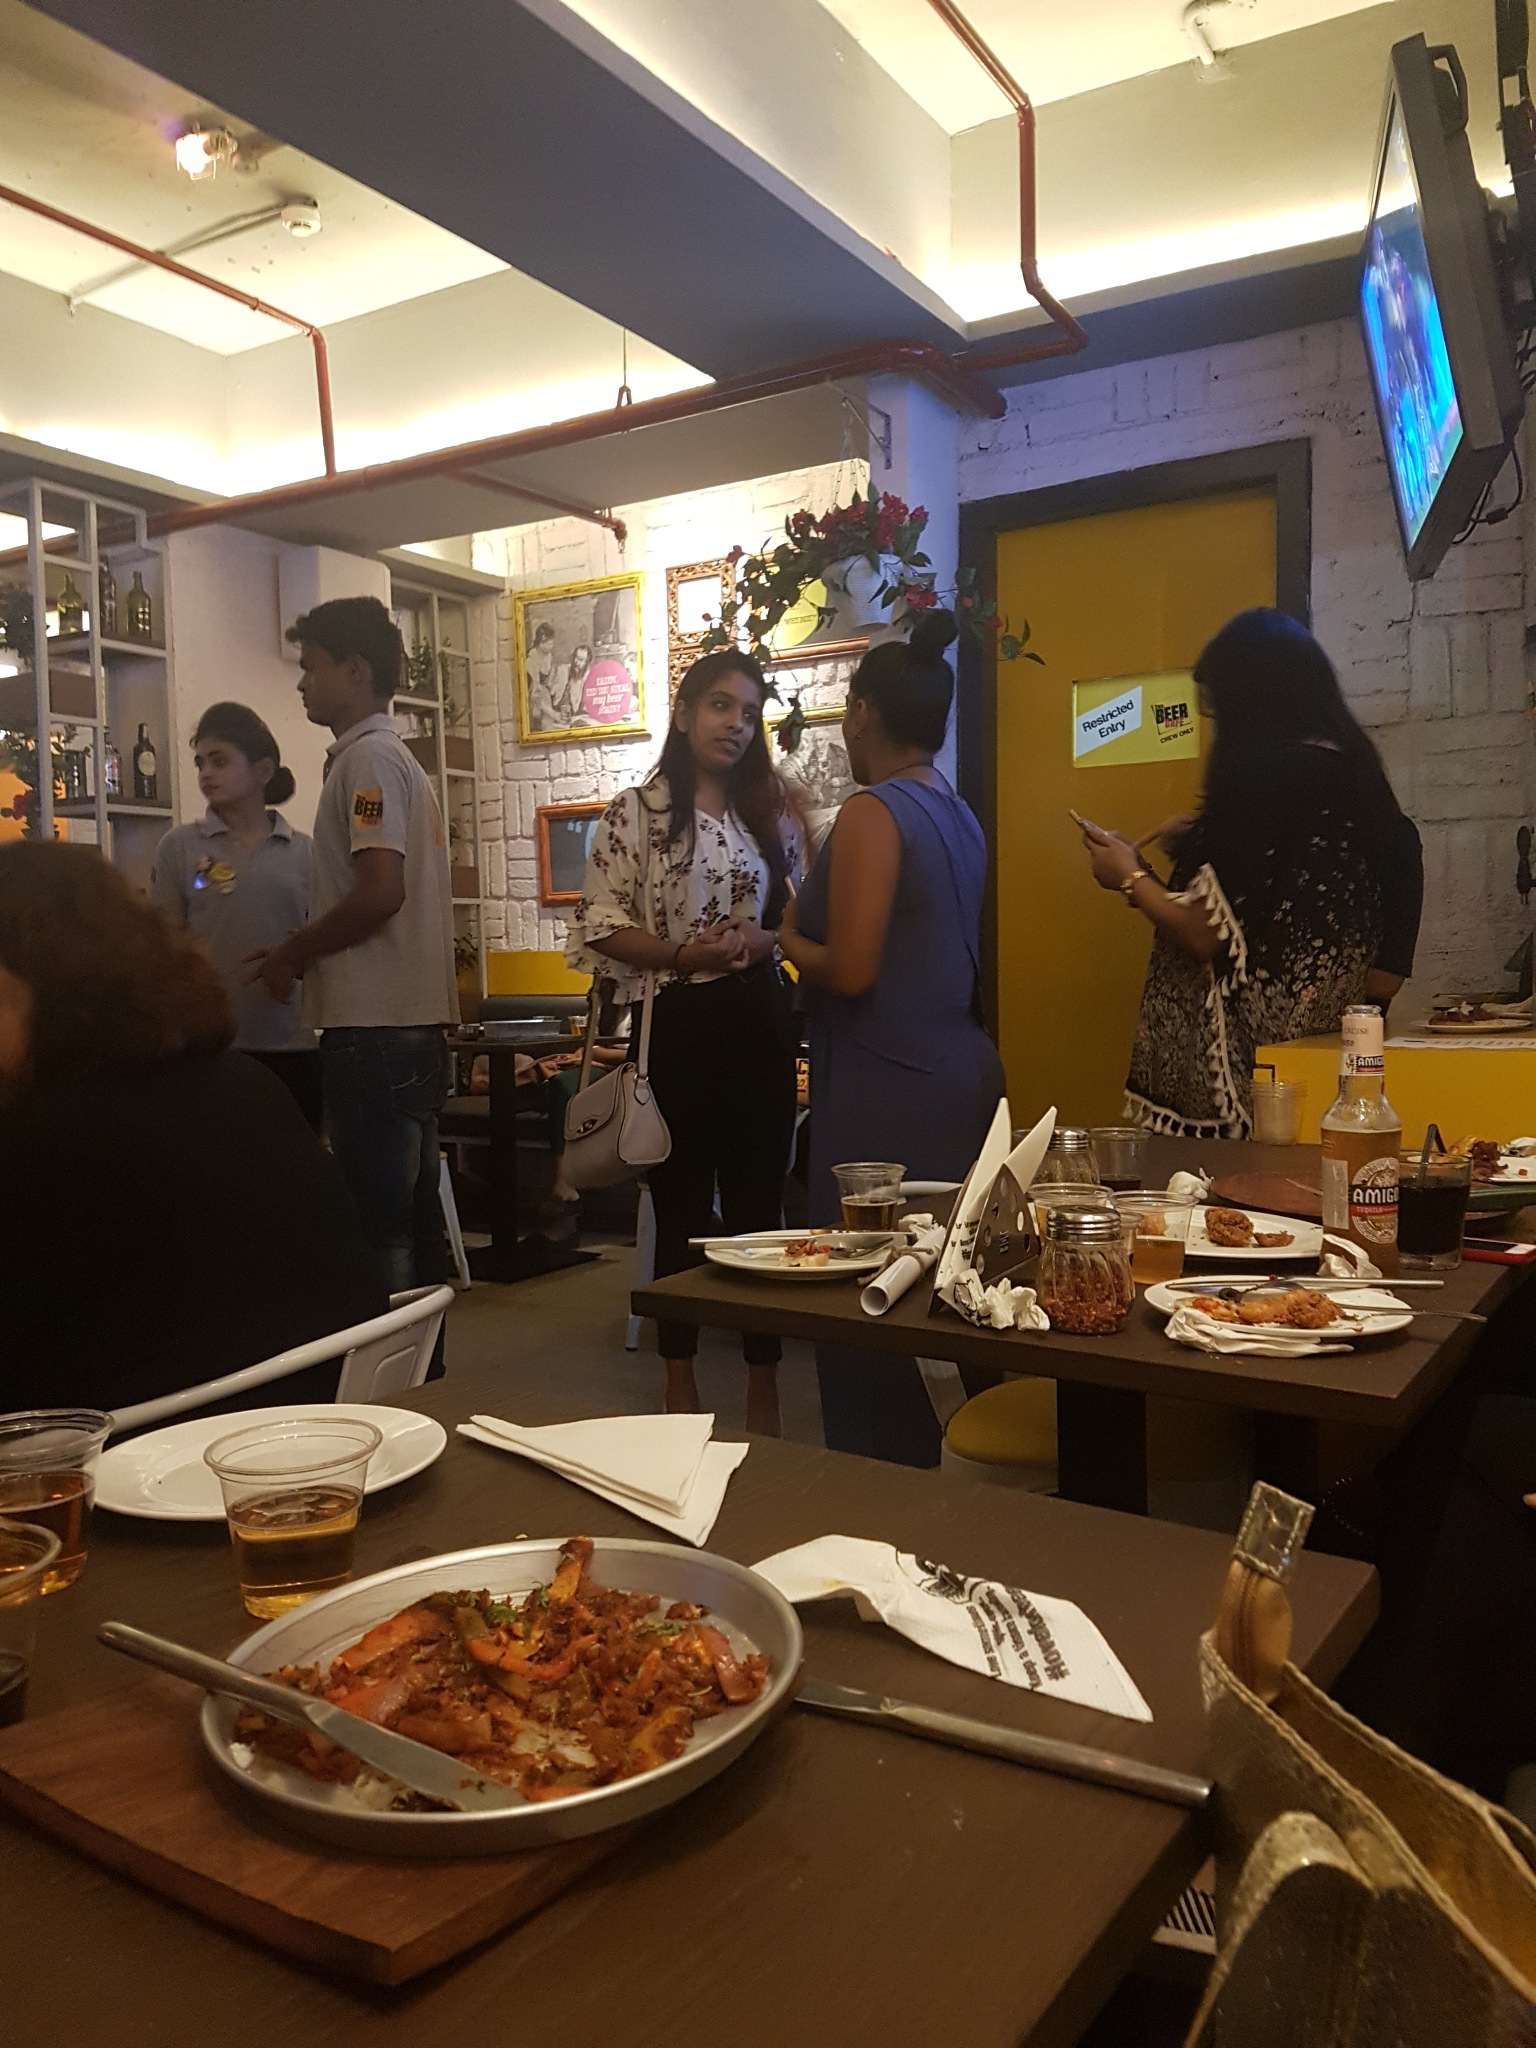 At a Beer Cafe by Pushpa Moorjani